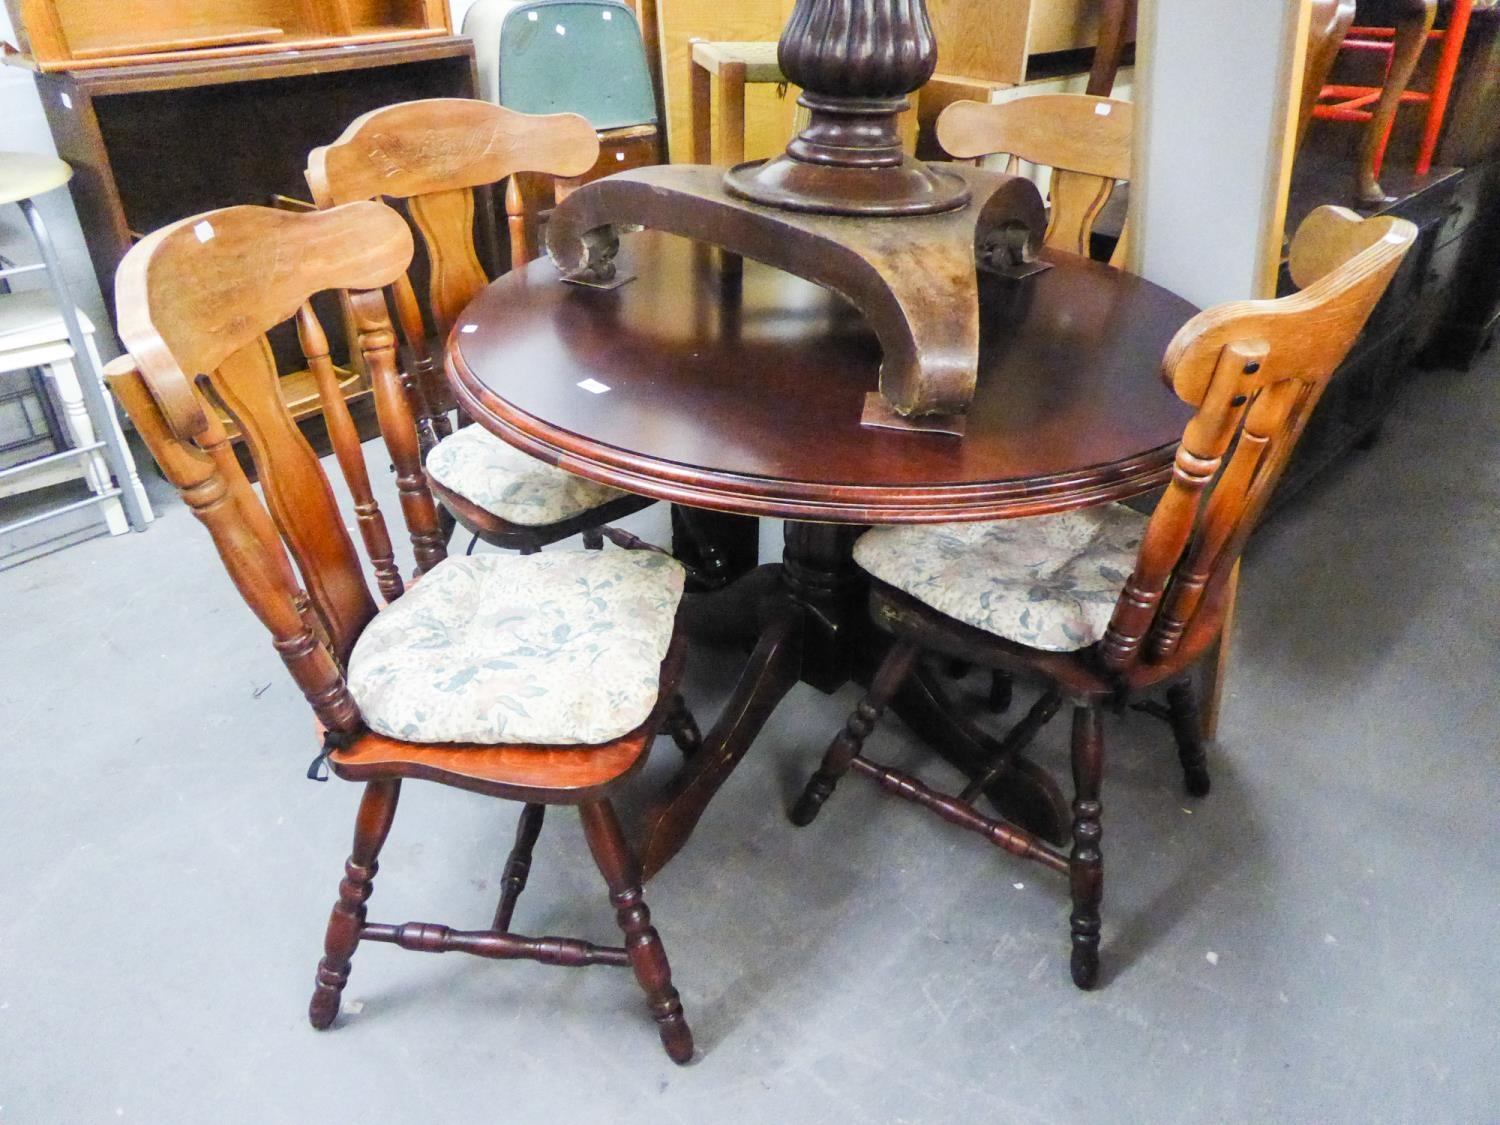 Lot 69 - A MODERN CIRCULAR BREAKFAST TABLE AND FOUR MATCHING CHAIRS